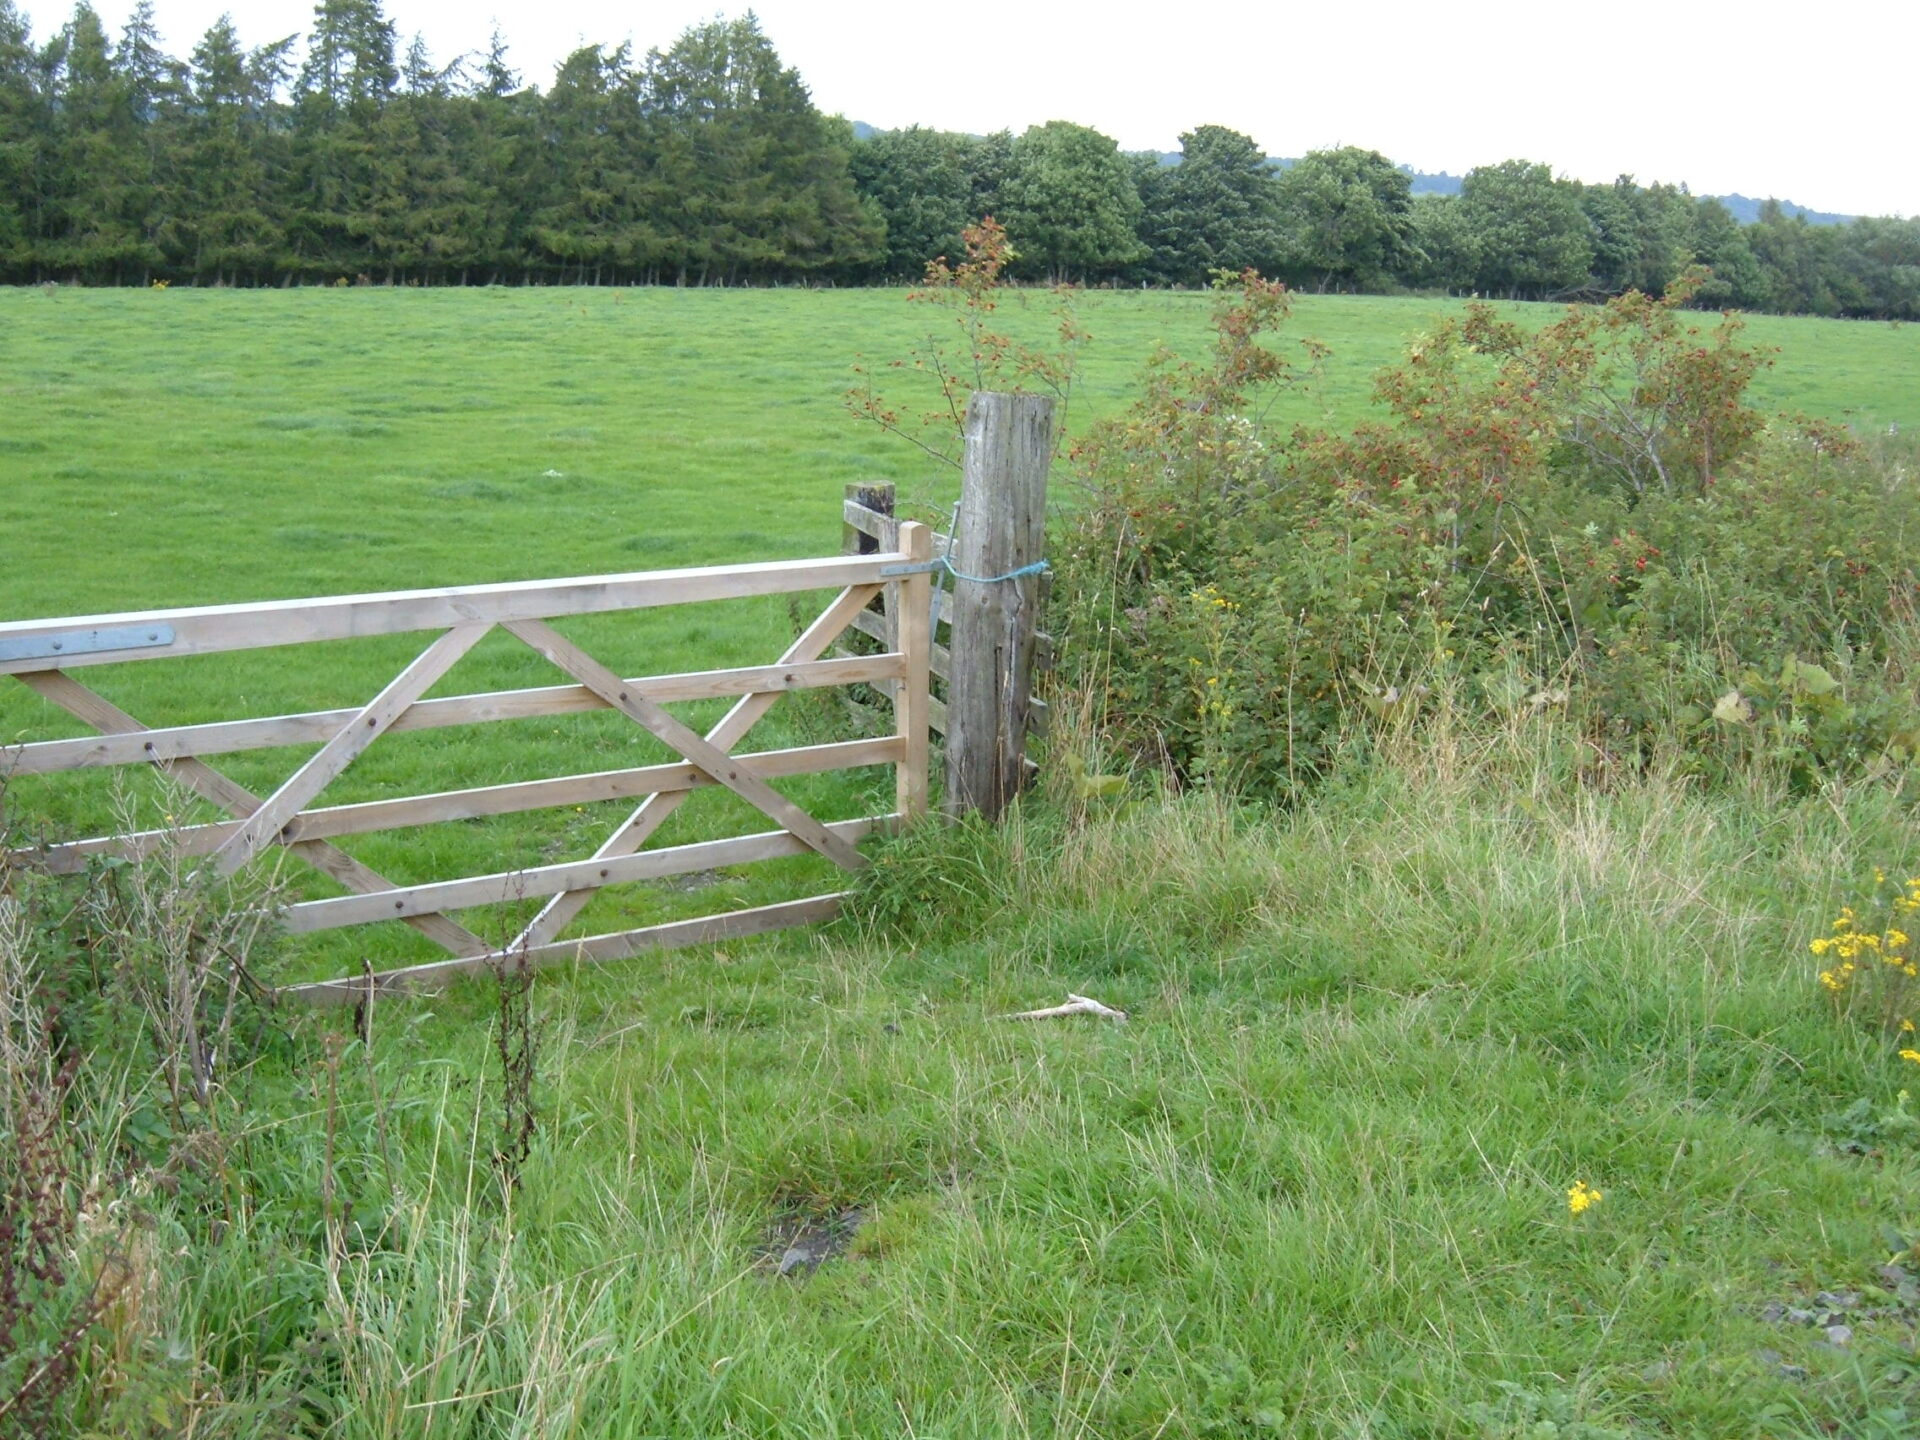 Image of hedges and a gate